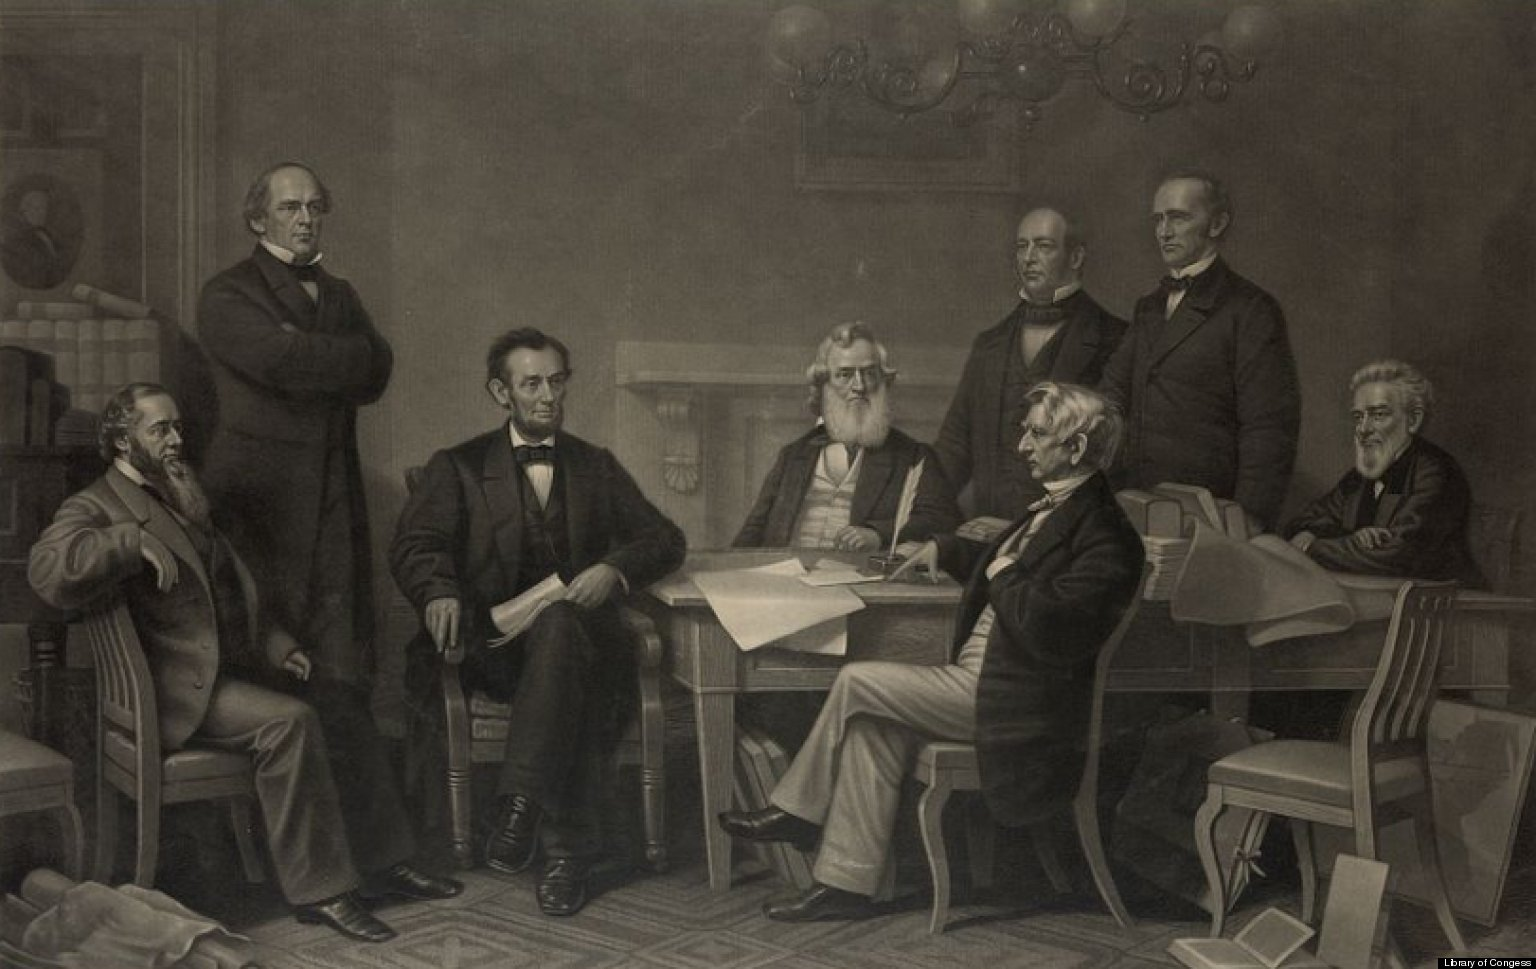 abraham lincoln and the emancipation proclamation essay The emancipation proclamation on january 1, 1863, president abraham lincoln's emancipation proclamation went into full effect, and was the document that supposedly.